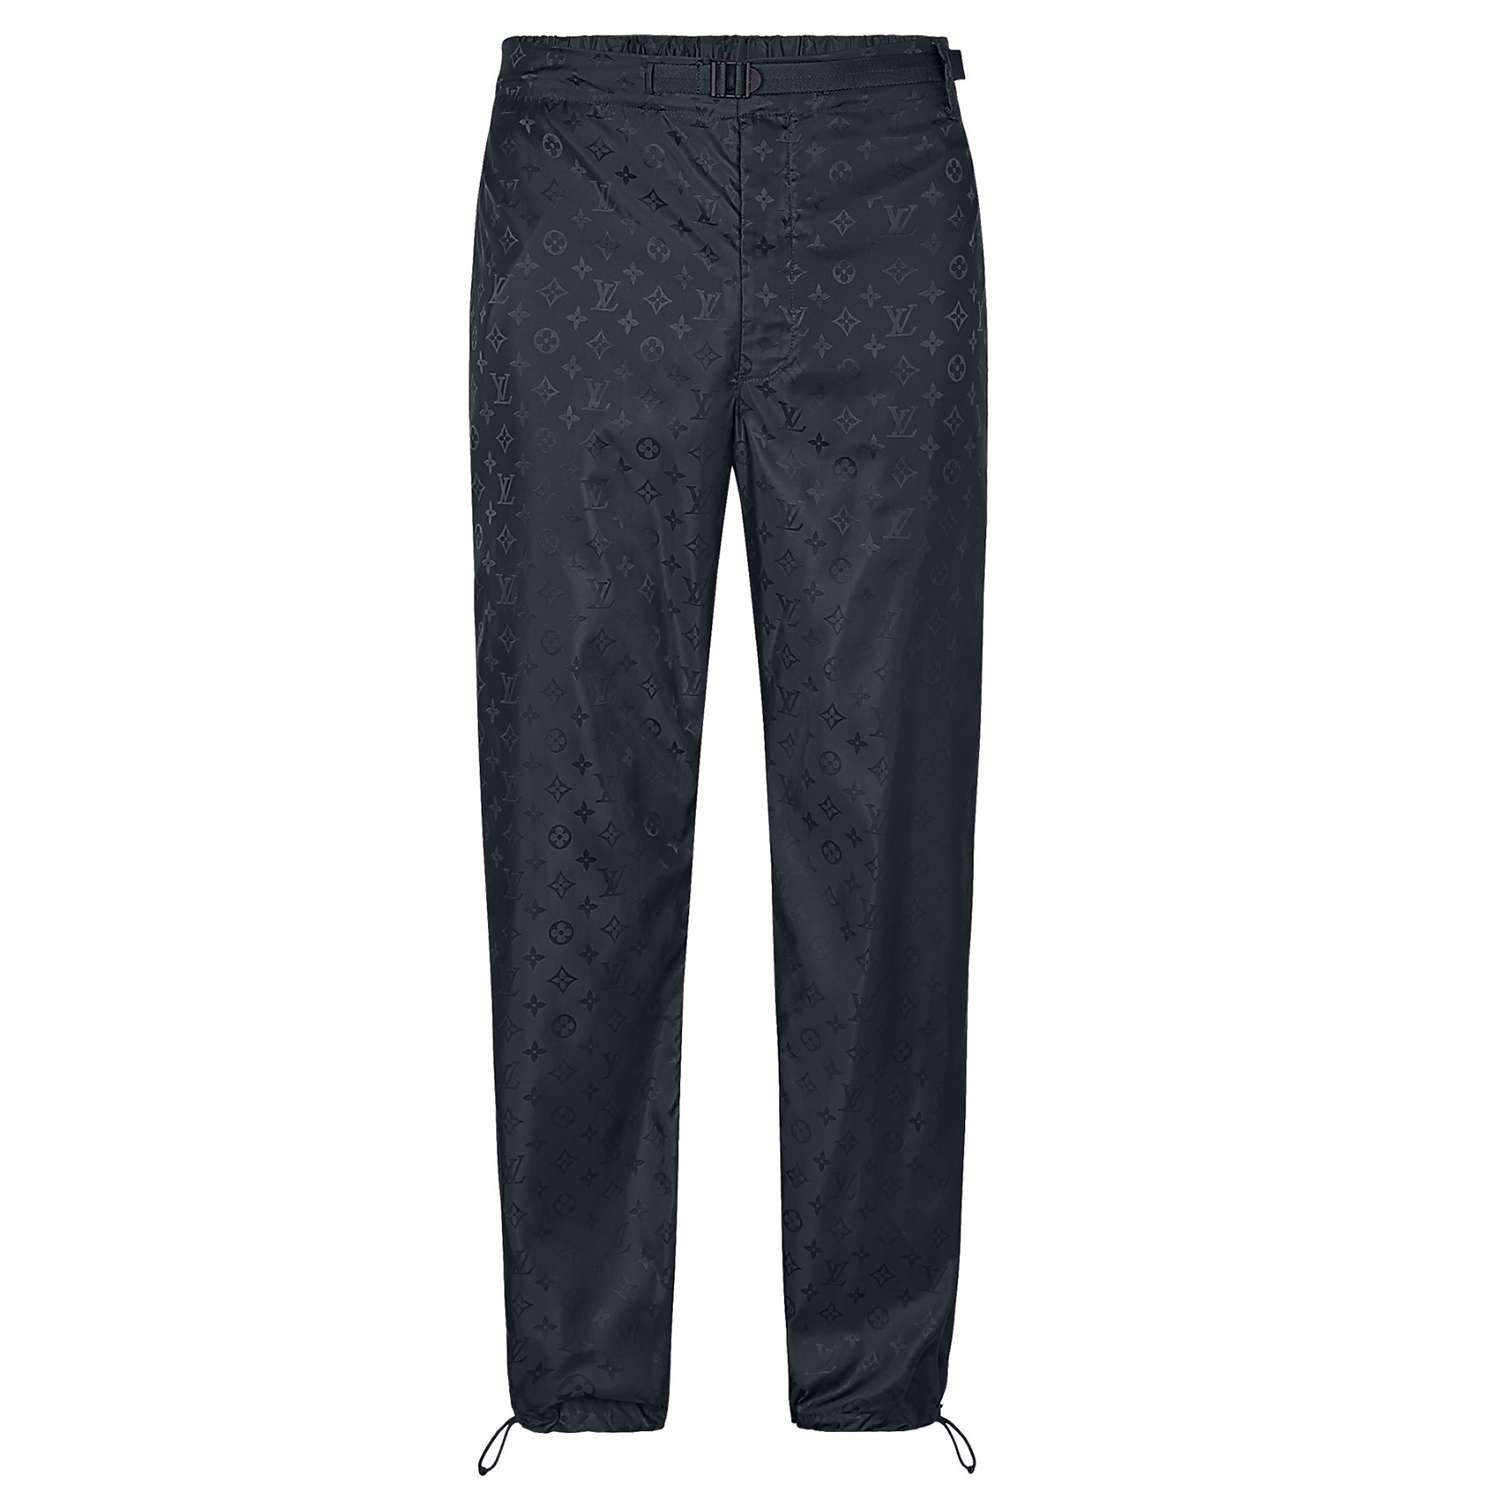 MONOGRAM TRACKPANTS - €790 $11401A474YMONOGRAM JACQUARD